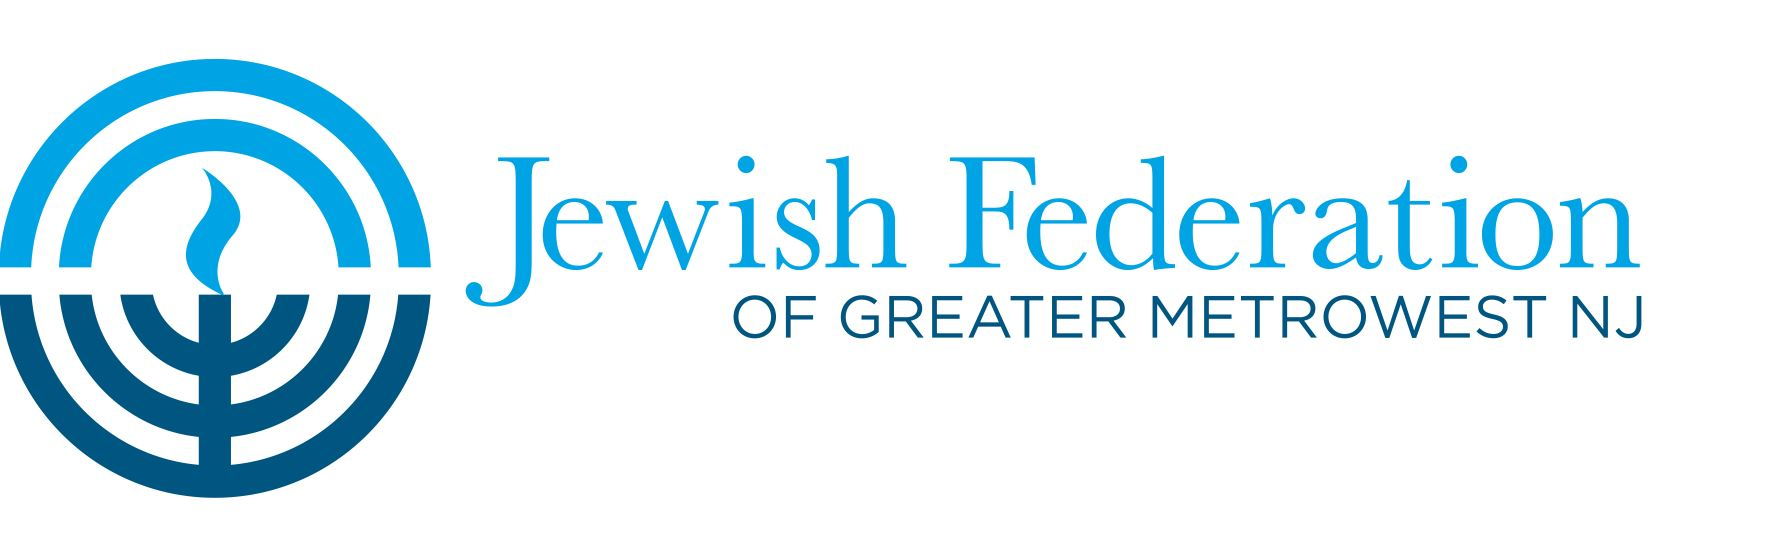 jewish_federation_of_greater_metrowest_nj.JPG